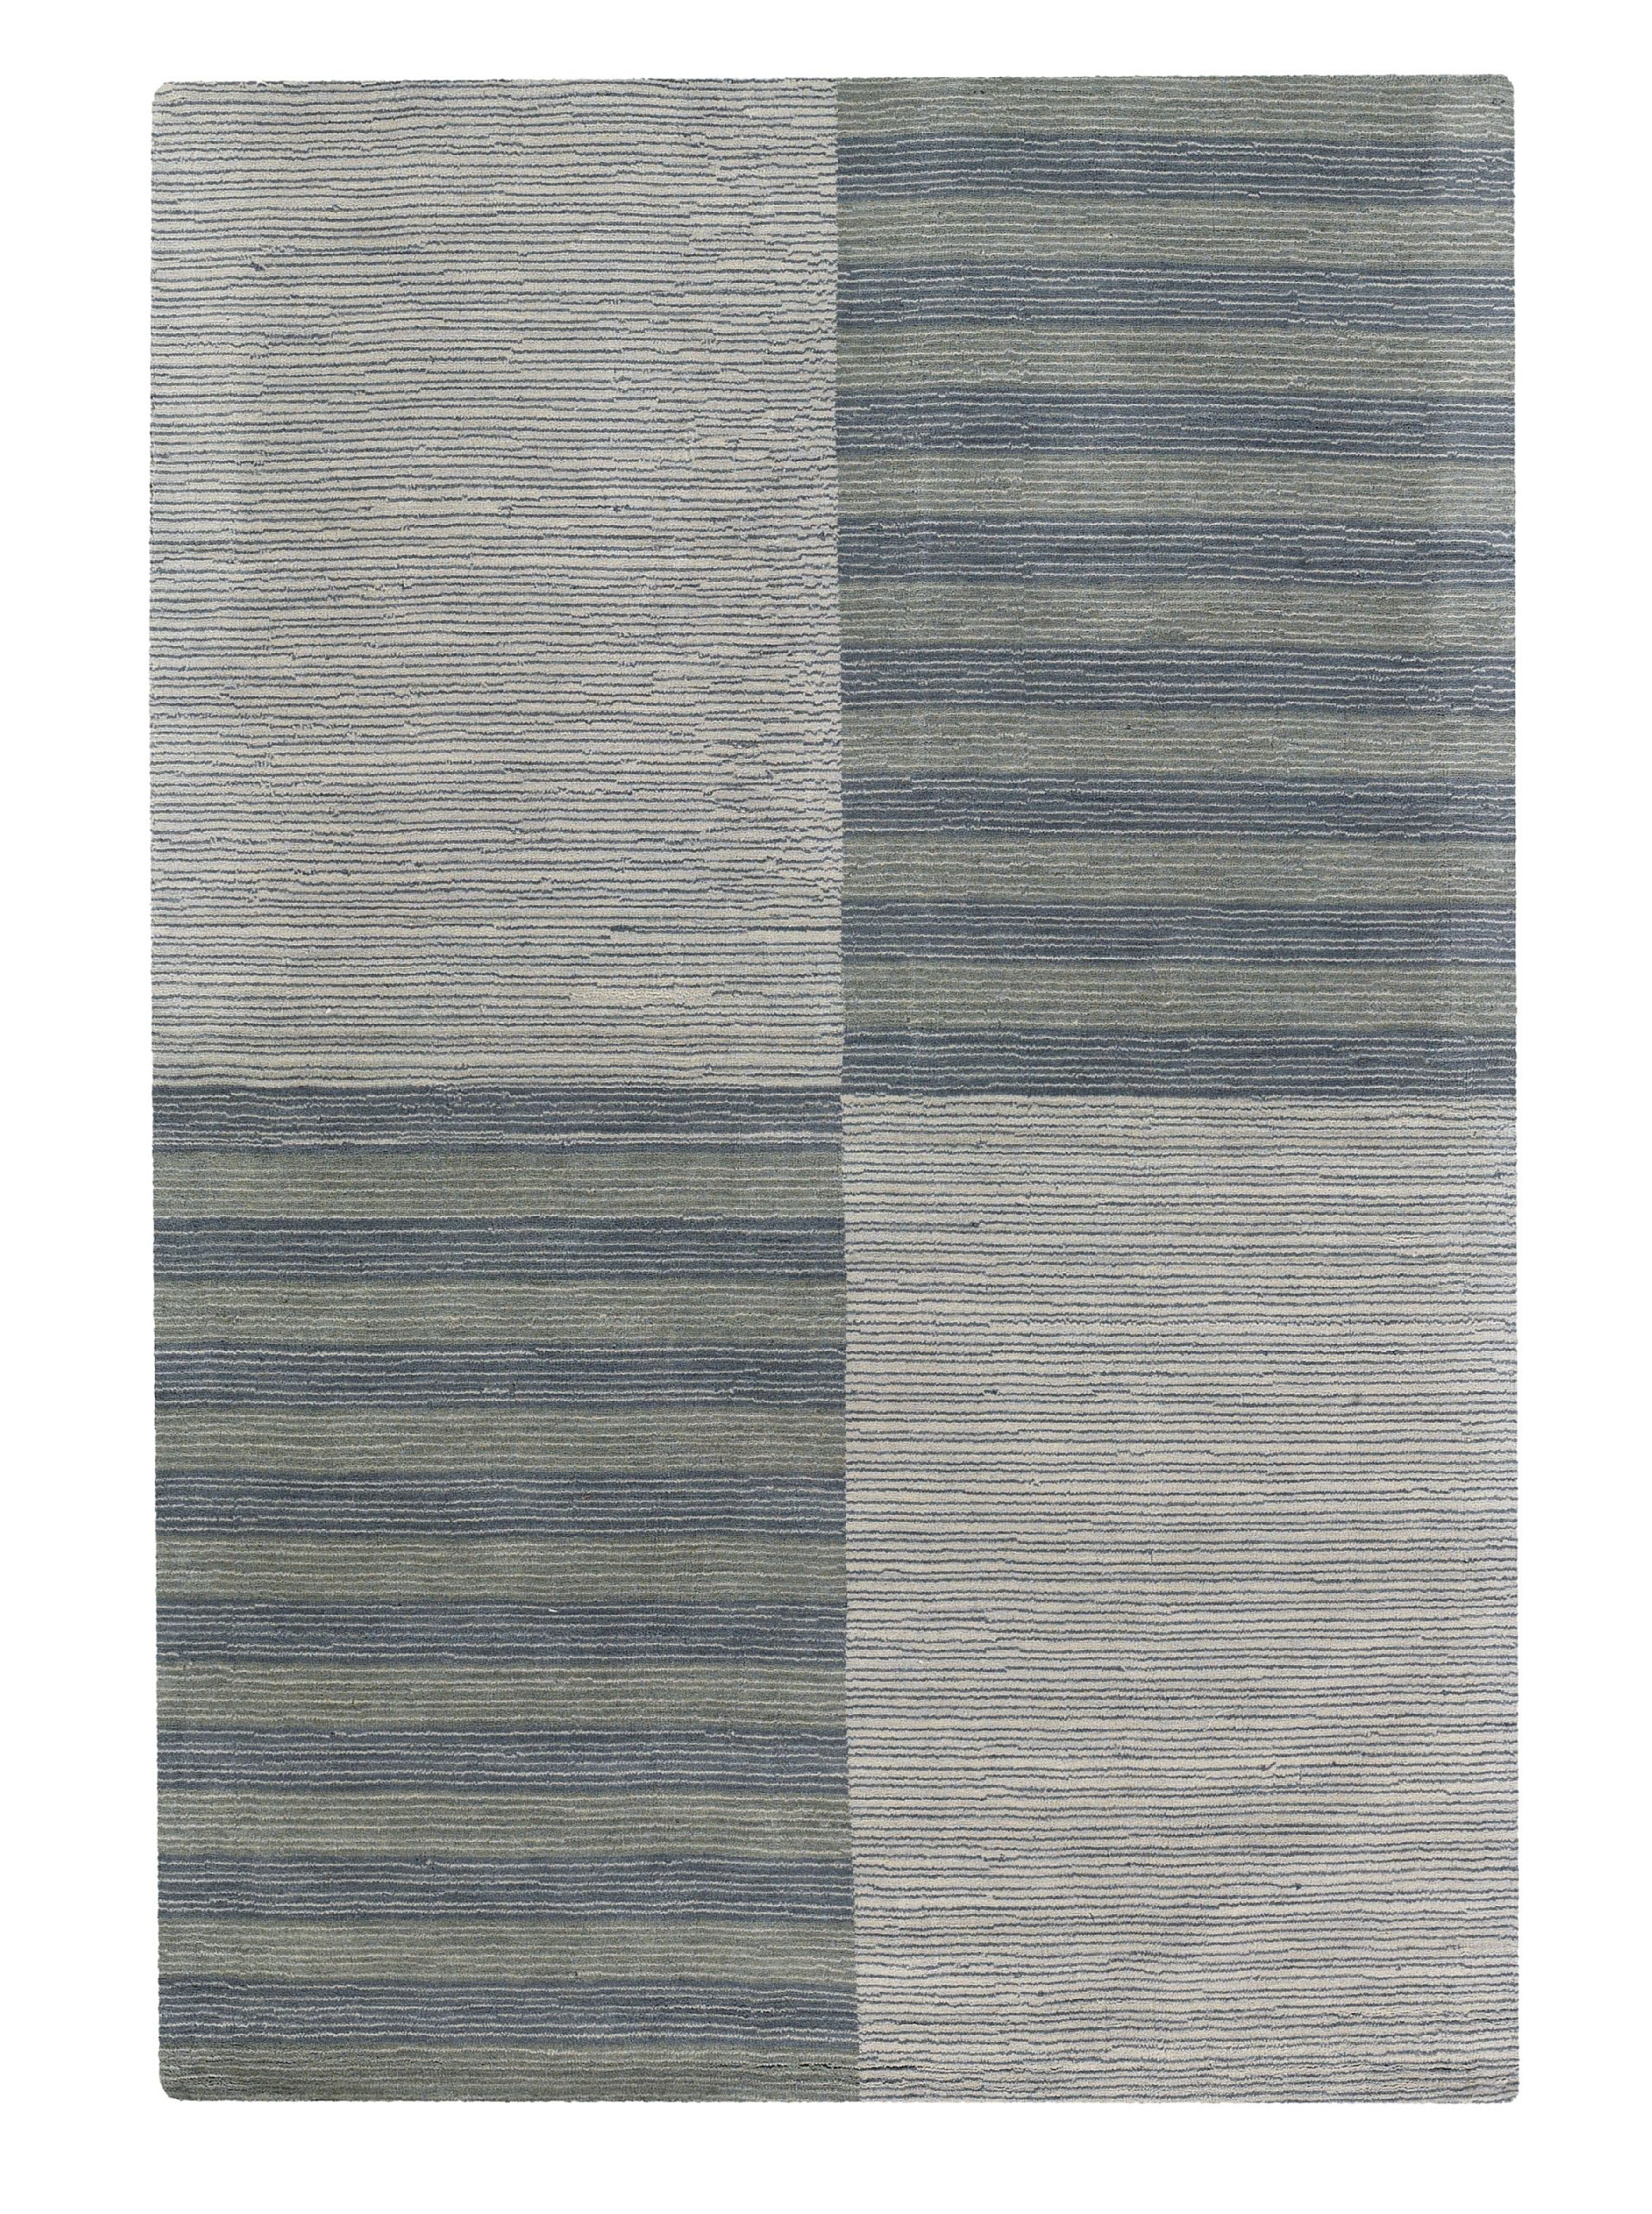 Chandra Brenda Rug Grey Add Texture And Pattern To Any E With This Hand Tufted Made From High Quality Wool